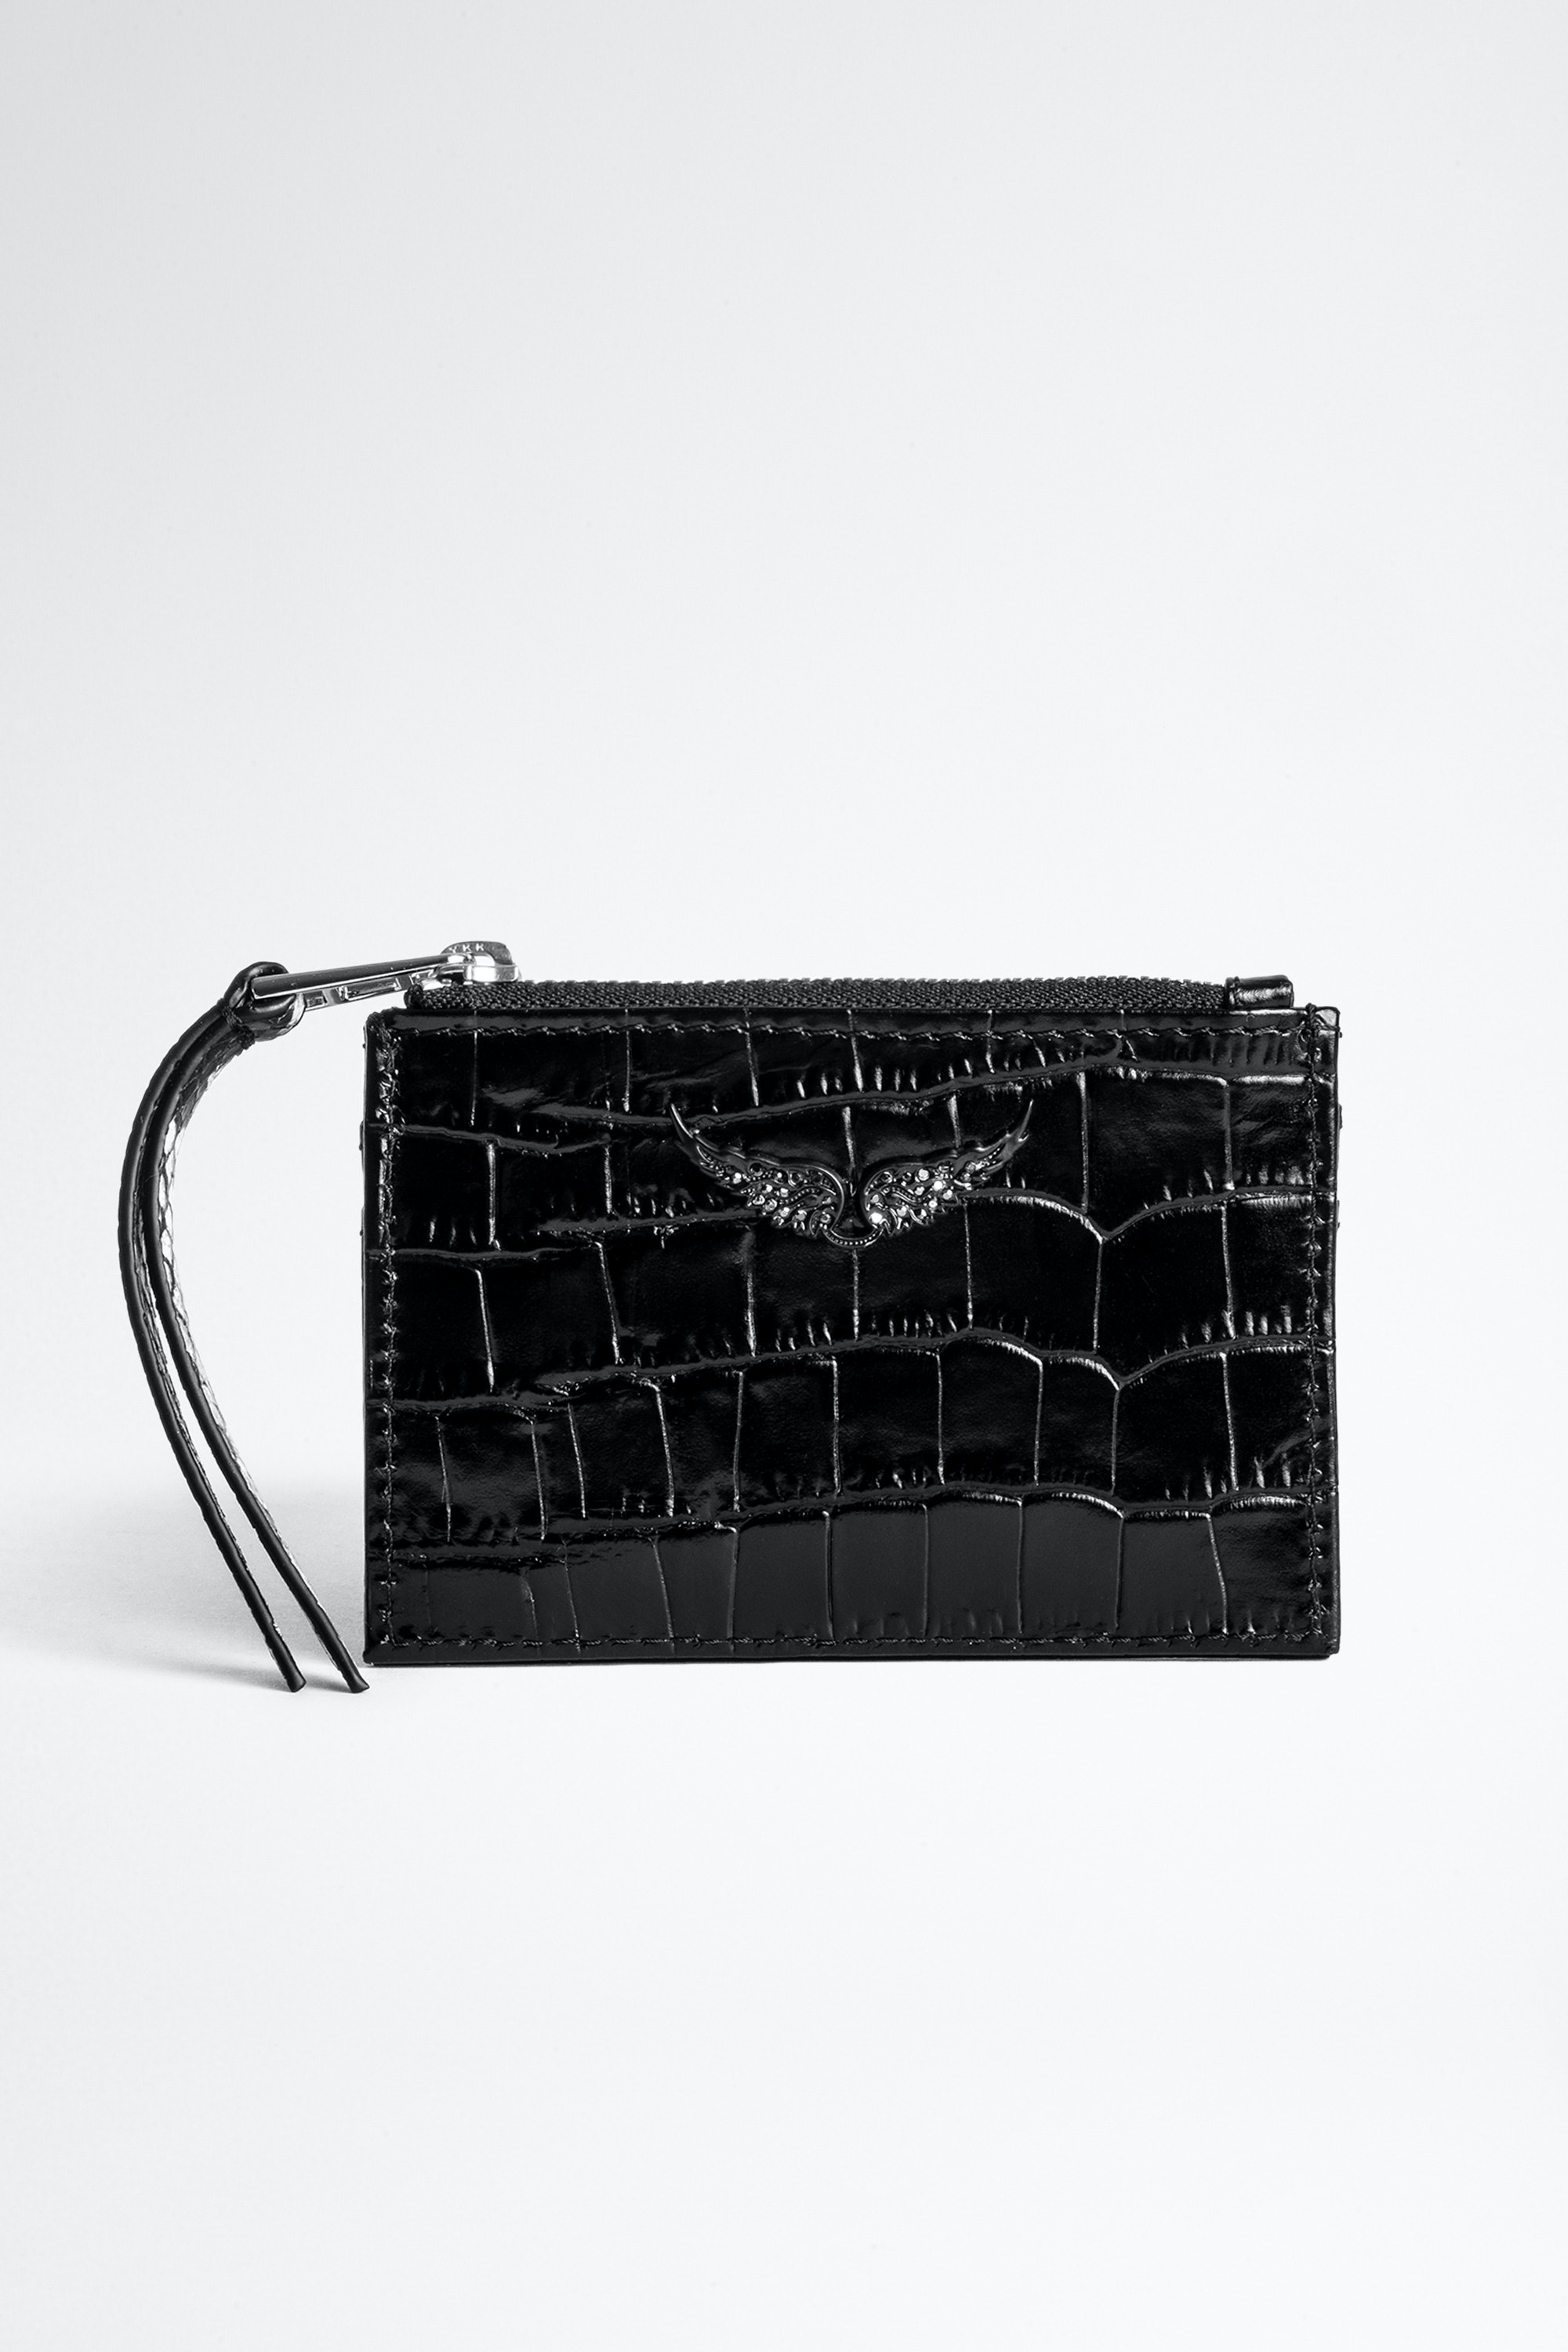 ZV Pass Croco Card Holder